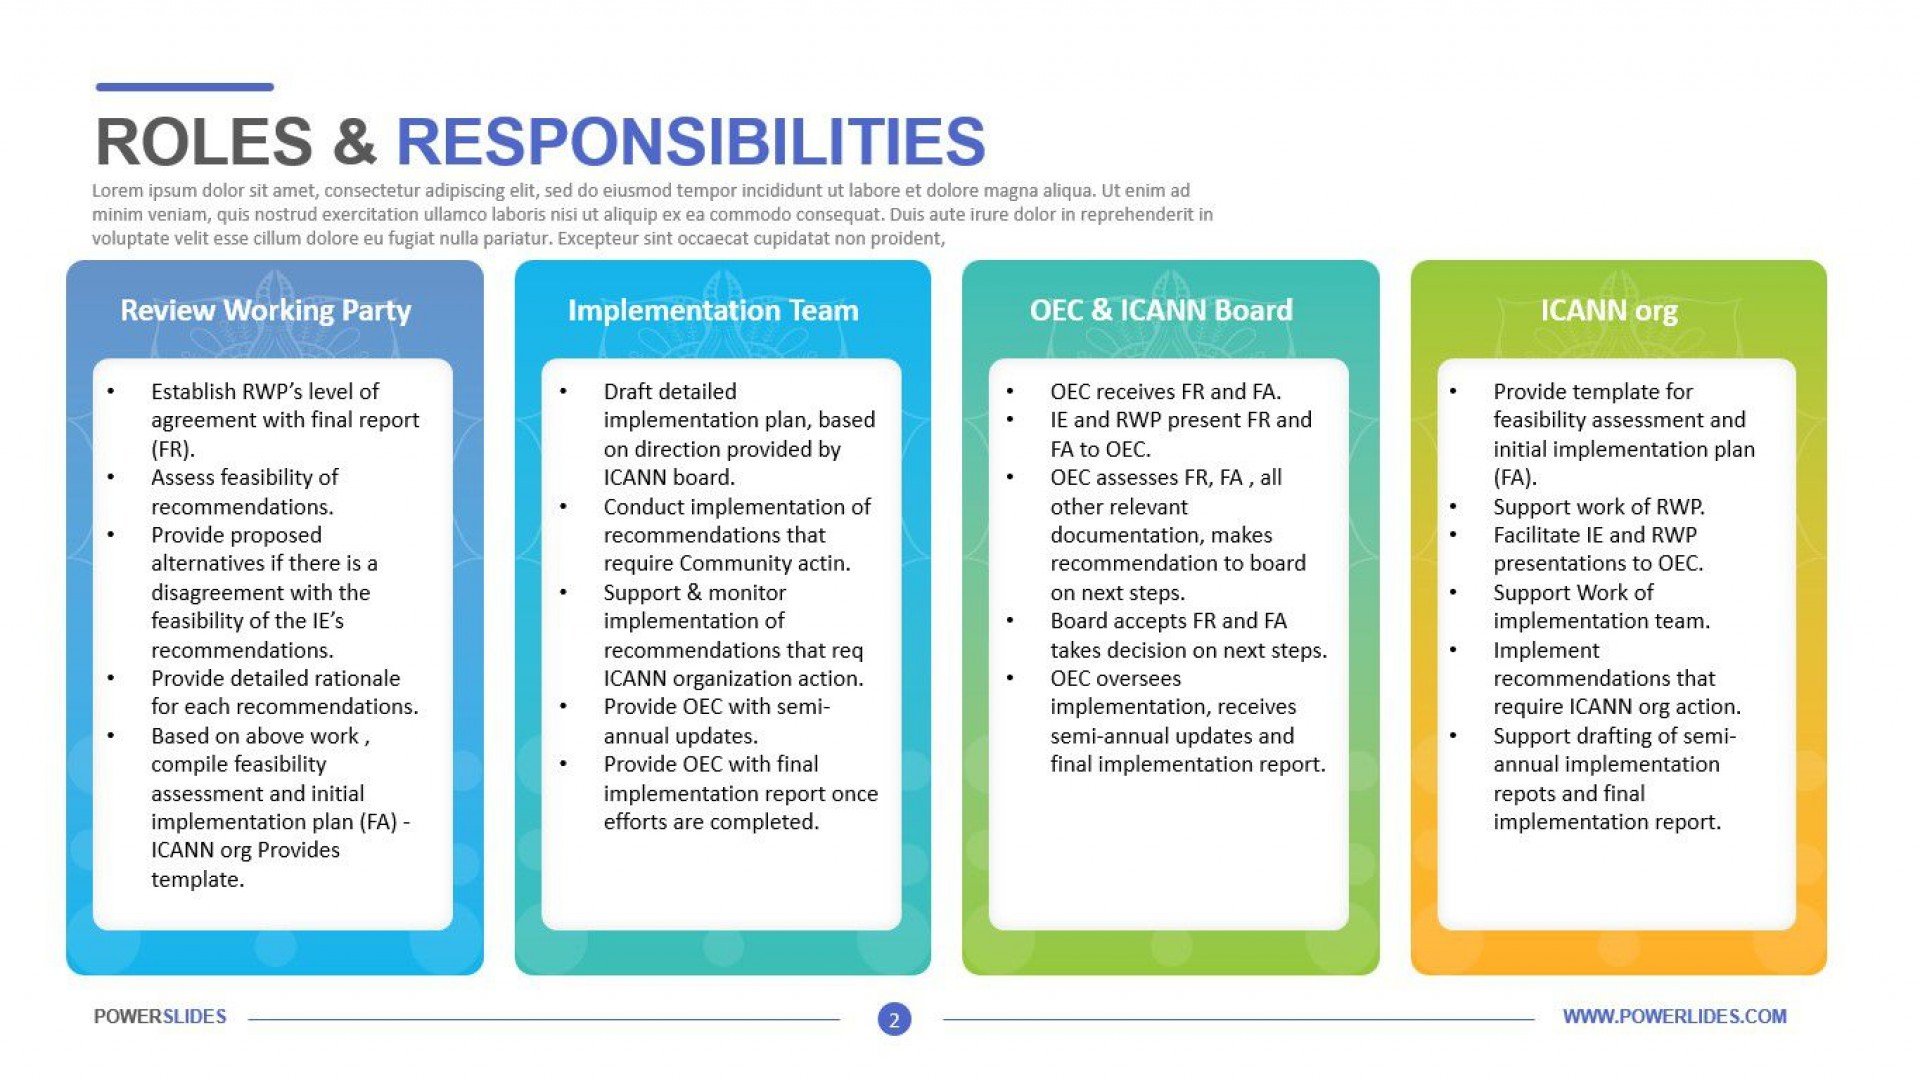 008 Staggering Project Role And Responsibilitie Template Powerpoint Concept 1920